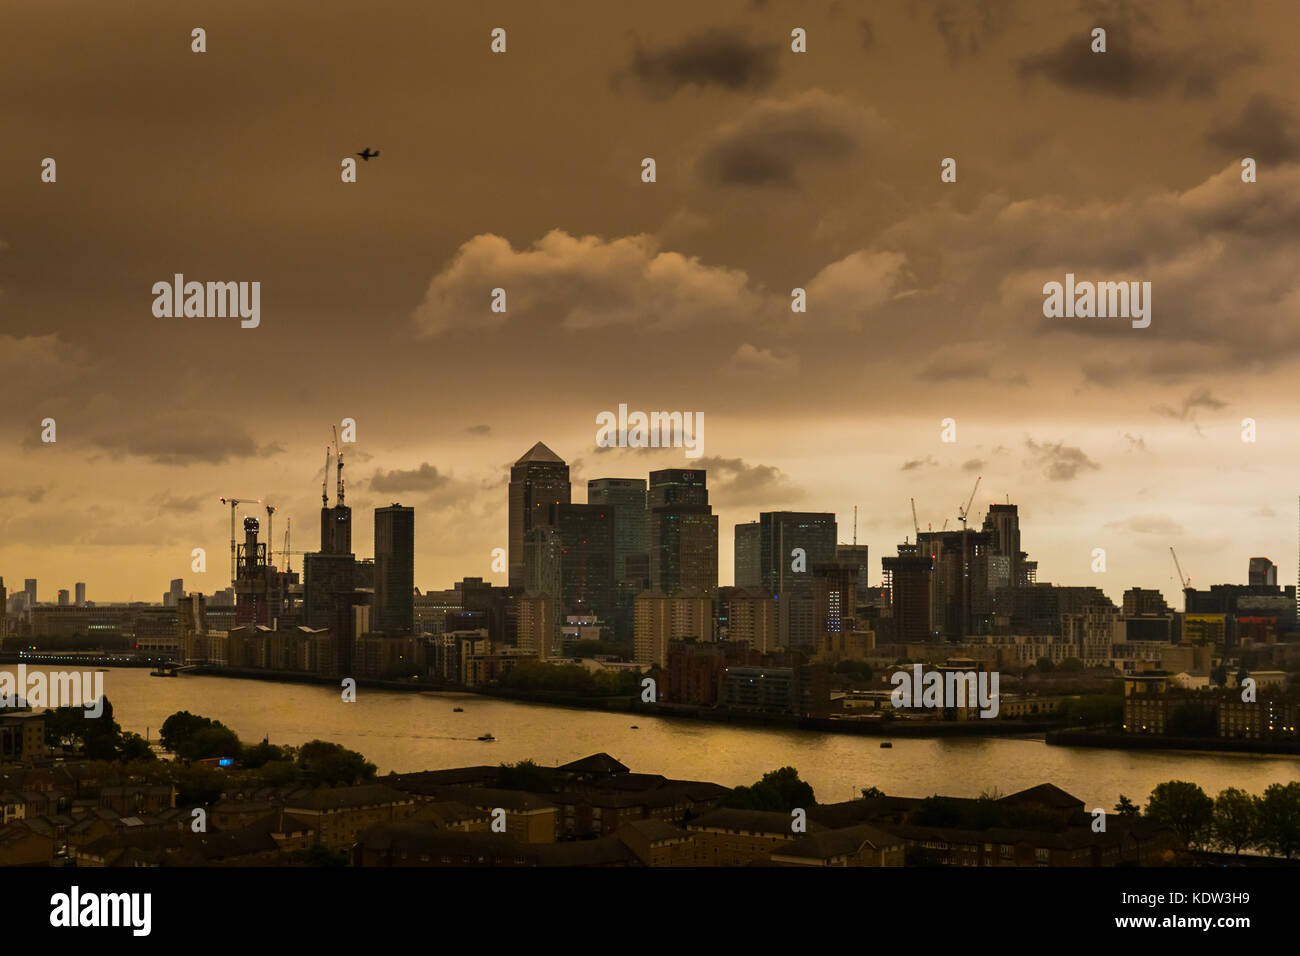 London, UK. 16th Oct, 2017. UK Weather: Storm Ophelia brings an unusual glow to the city skies over Canary Wharf Stock Photo